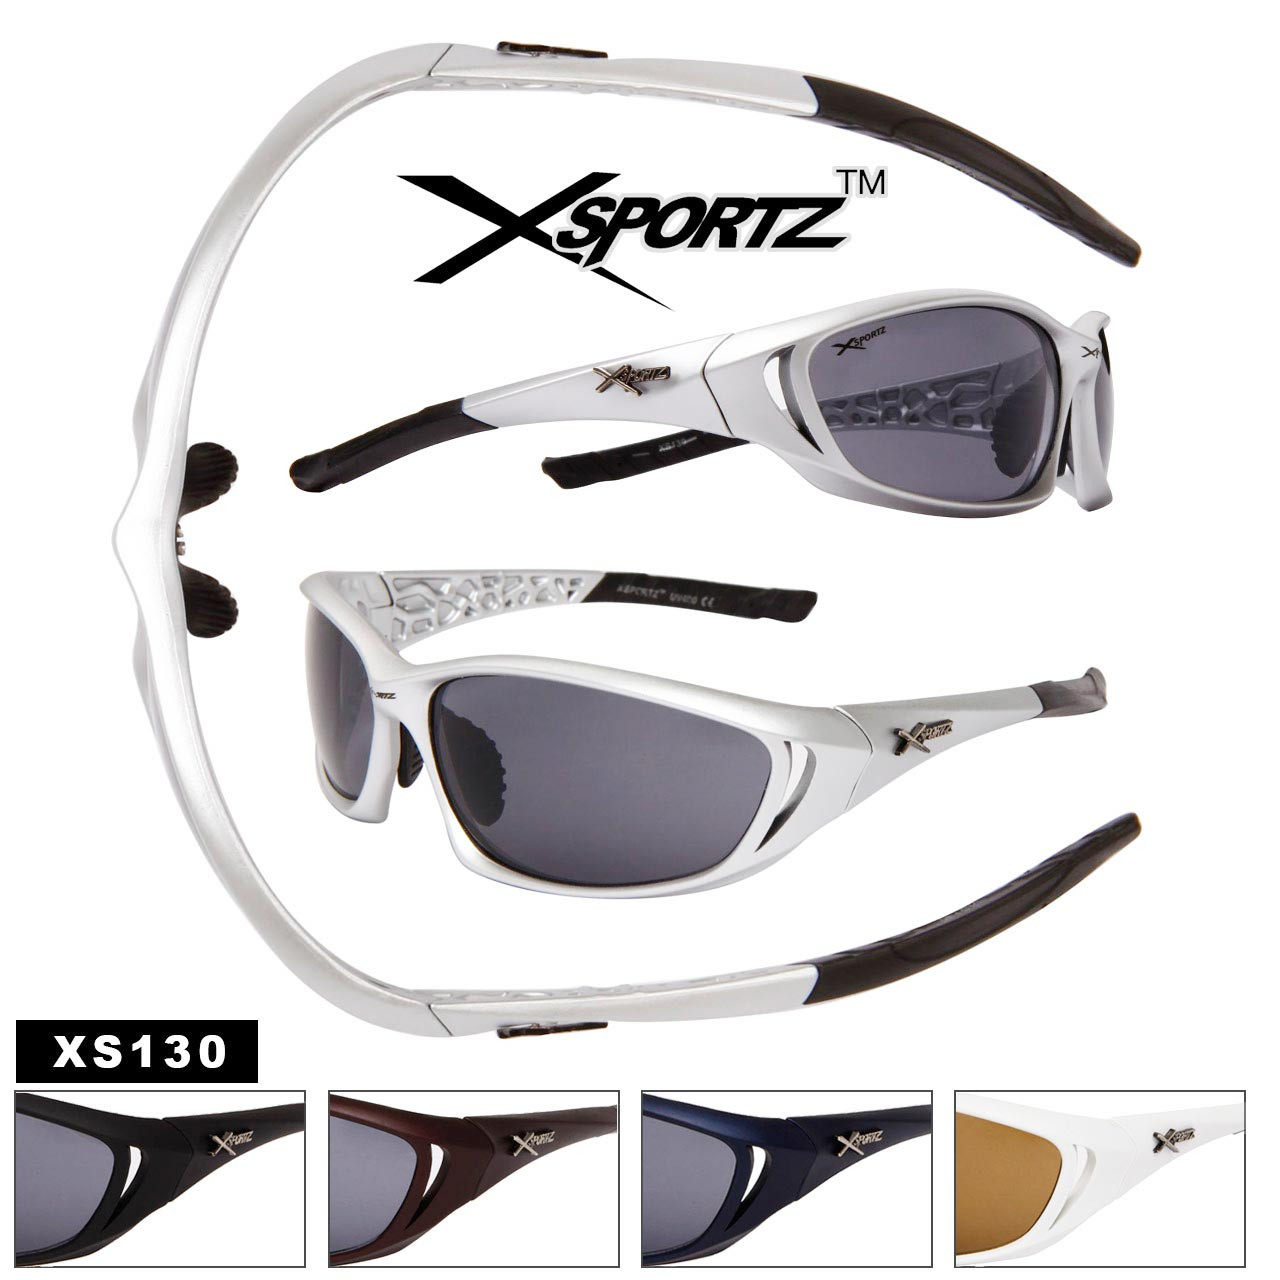 Bulk Sunglasses XS130